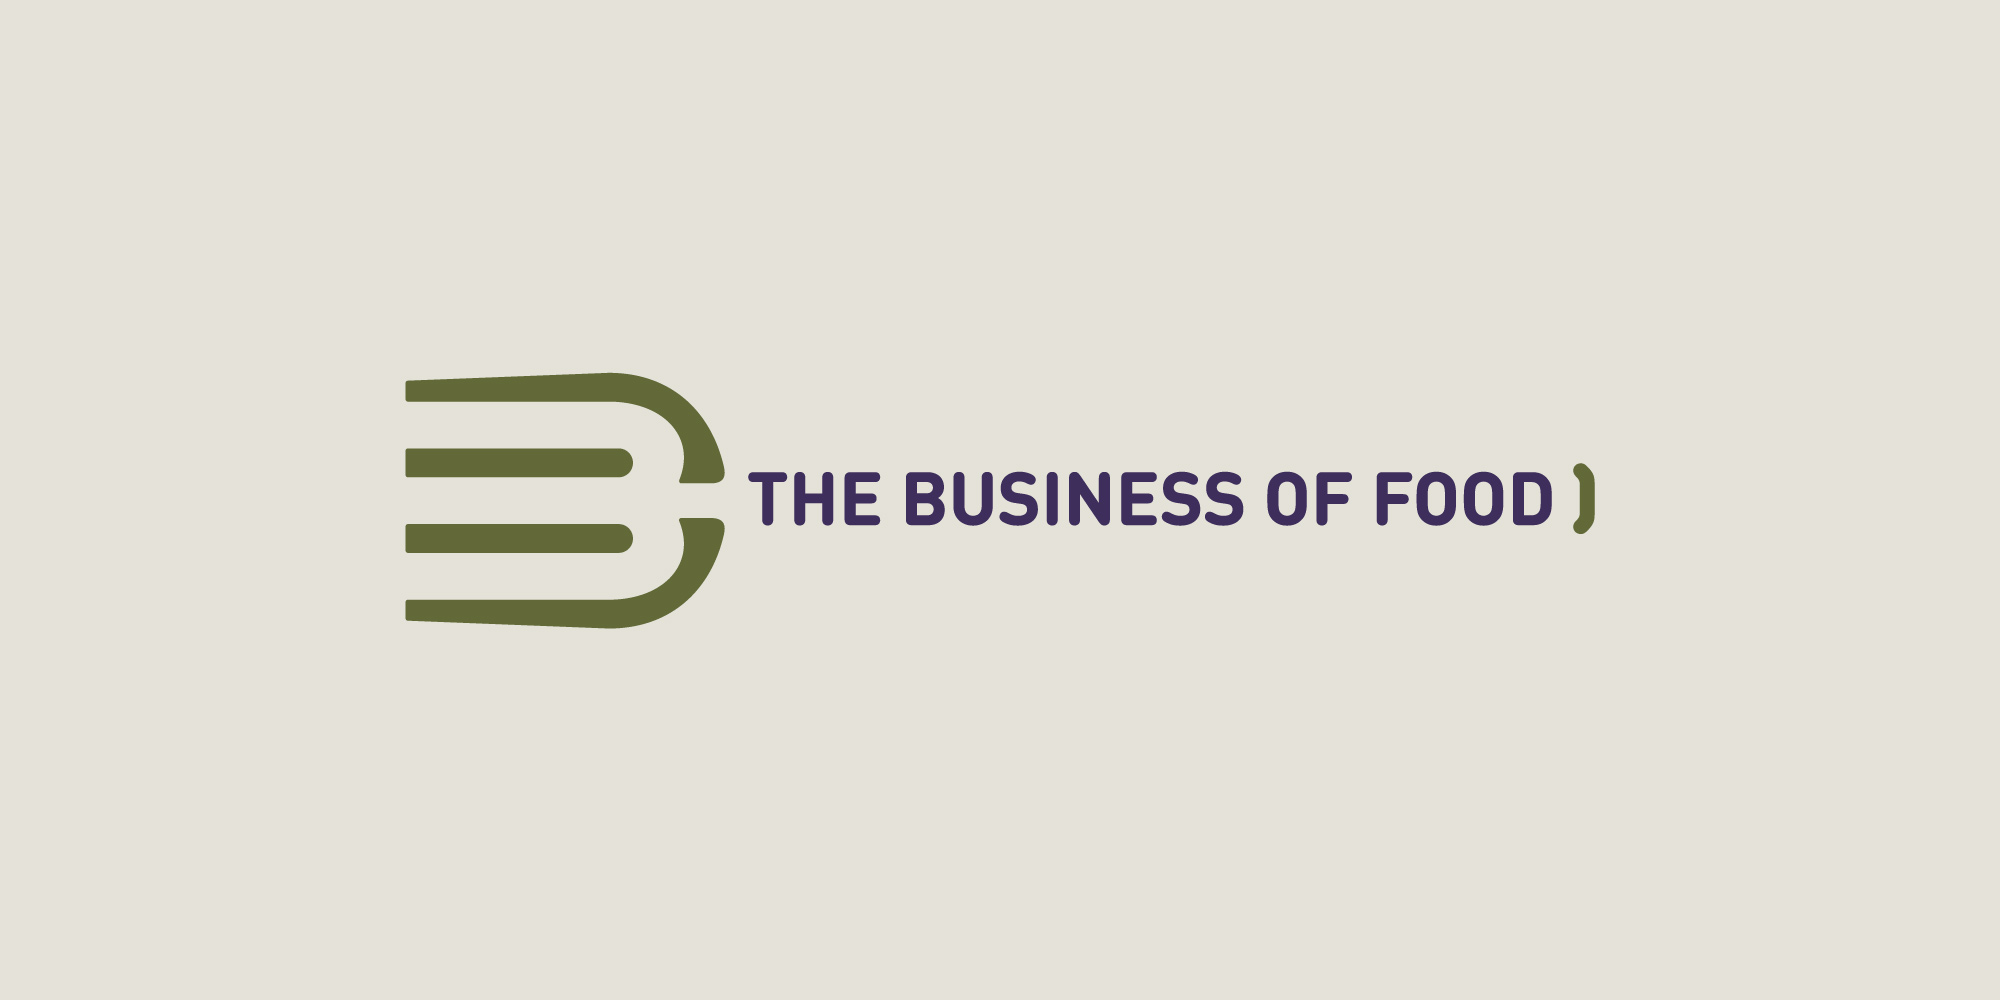 Cover image: The Business of Food Brand Identity